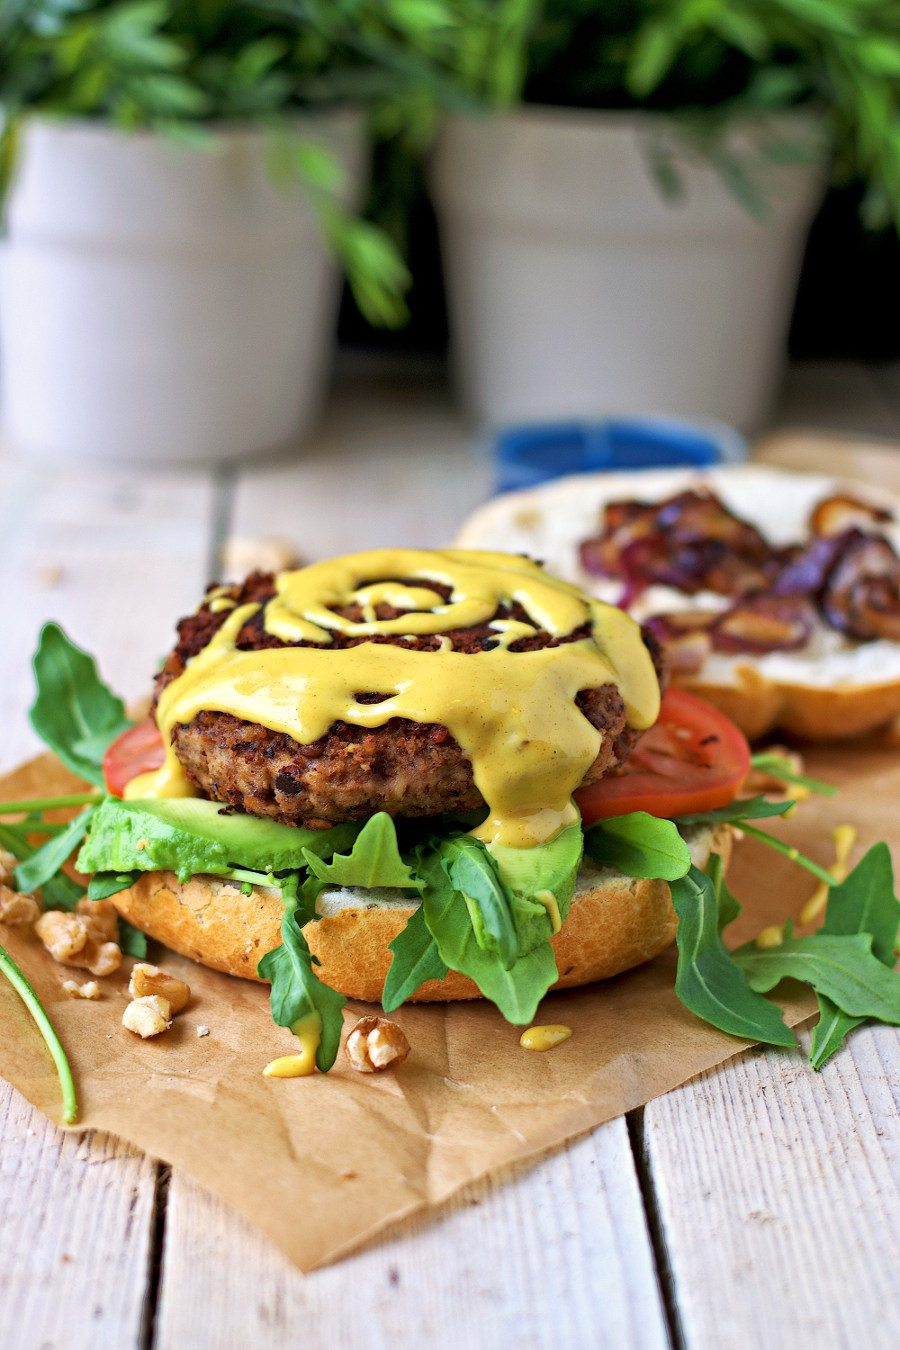 Side view on the open Vegan Lentil Burger with mustard sauce being sprinkled on the patty.